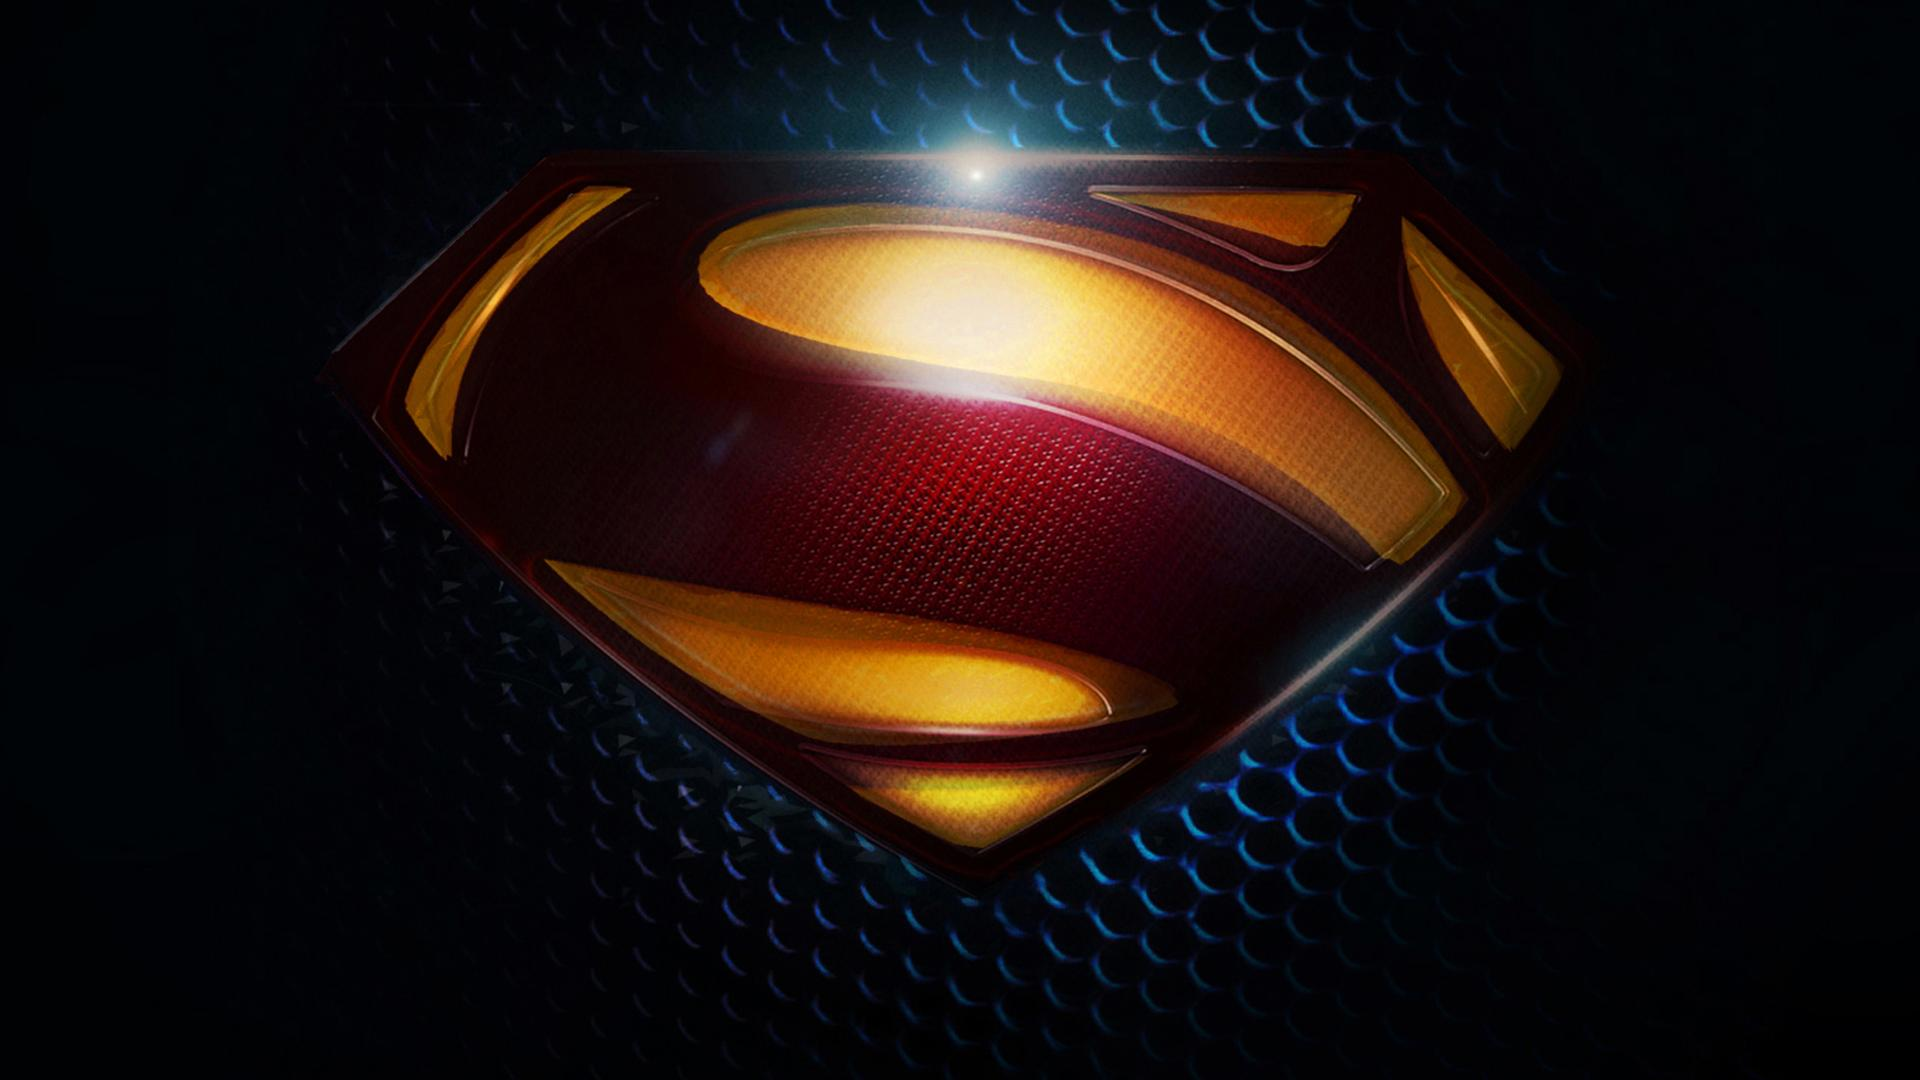 Superman HD Wallpaper | Background Image | 1920x1080 | ID:687832 - Wallpaper Abyss